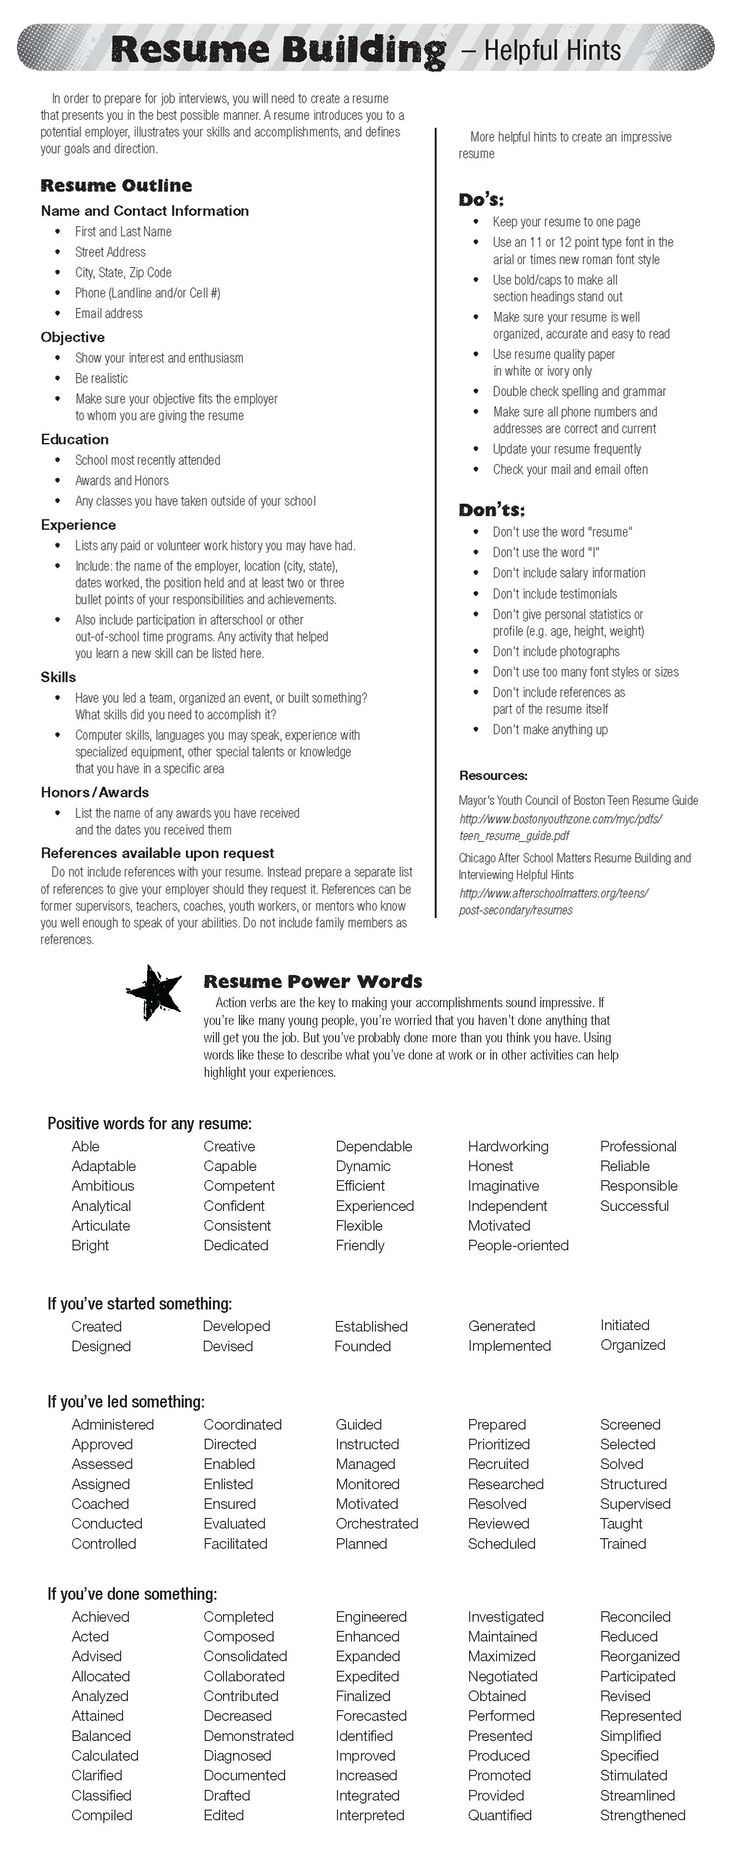 Opposenewapstandardsus  Ravishing  Ideas About Resume On Pinterest  Cv Format Resume  With Licious Check Out Todays Resume Building Tips Resume Resumepowerwords With Comely Job Title On Resume Also General Manager Resume Sample In Addition Resume Web Developer And Call Center Skills Resume As Well As Zookeeper Resume Additionally Resume Words For Teachers From Pinterestcom With Opposenewapstandardsus  Licious  Ideas About Resume On Pinterest  Cv Format Resume  With Comely Check Out Todays Resume Building Tips Resume Resumepowerwords And Ravishing Job Title On Resume Also General Manager Resume Sample In Addition Resume Web Developer From Pinterestcom